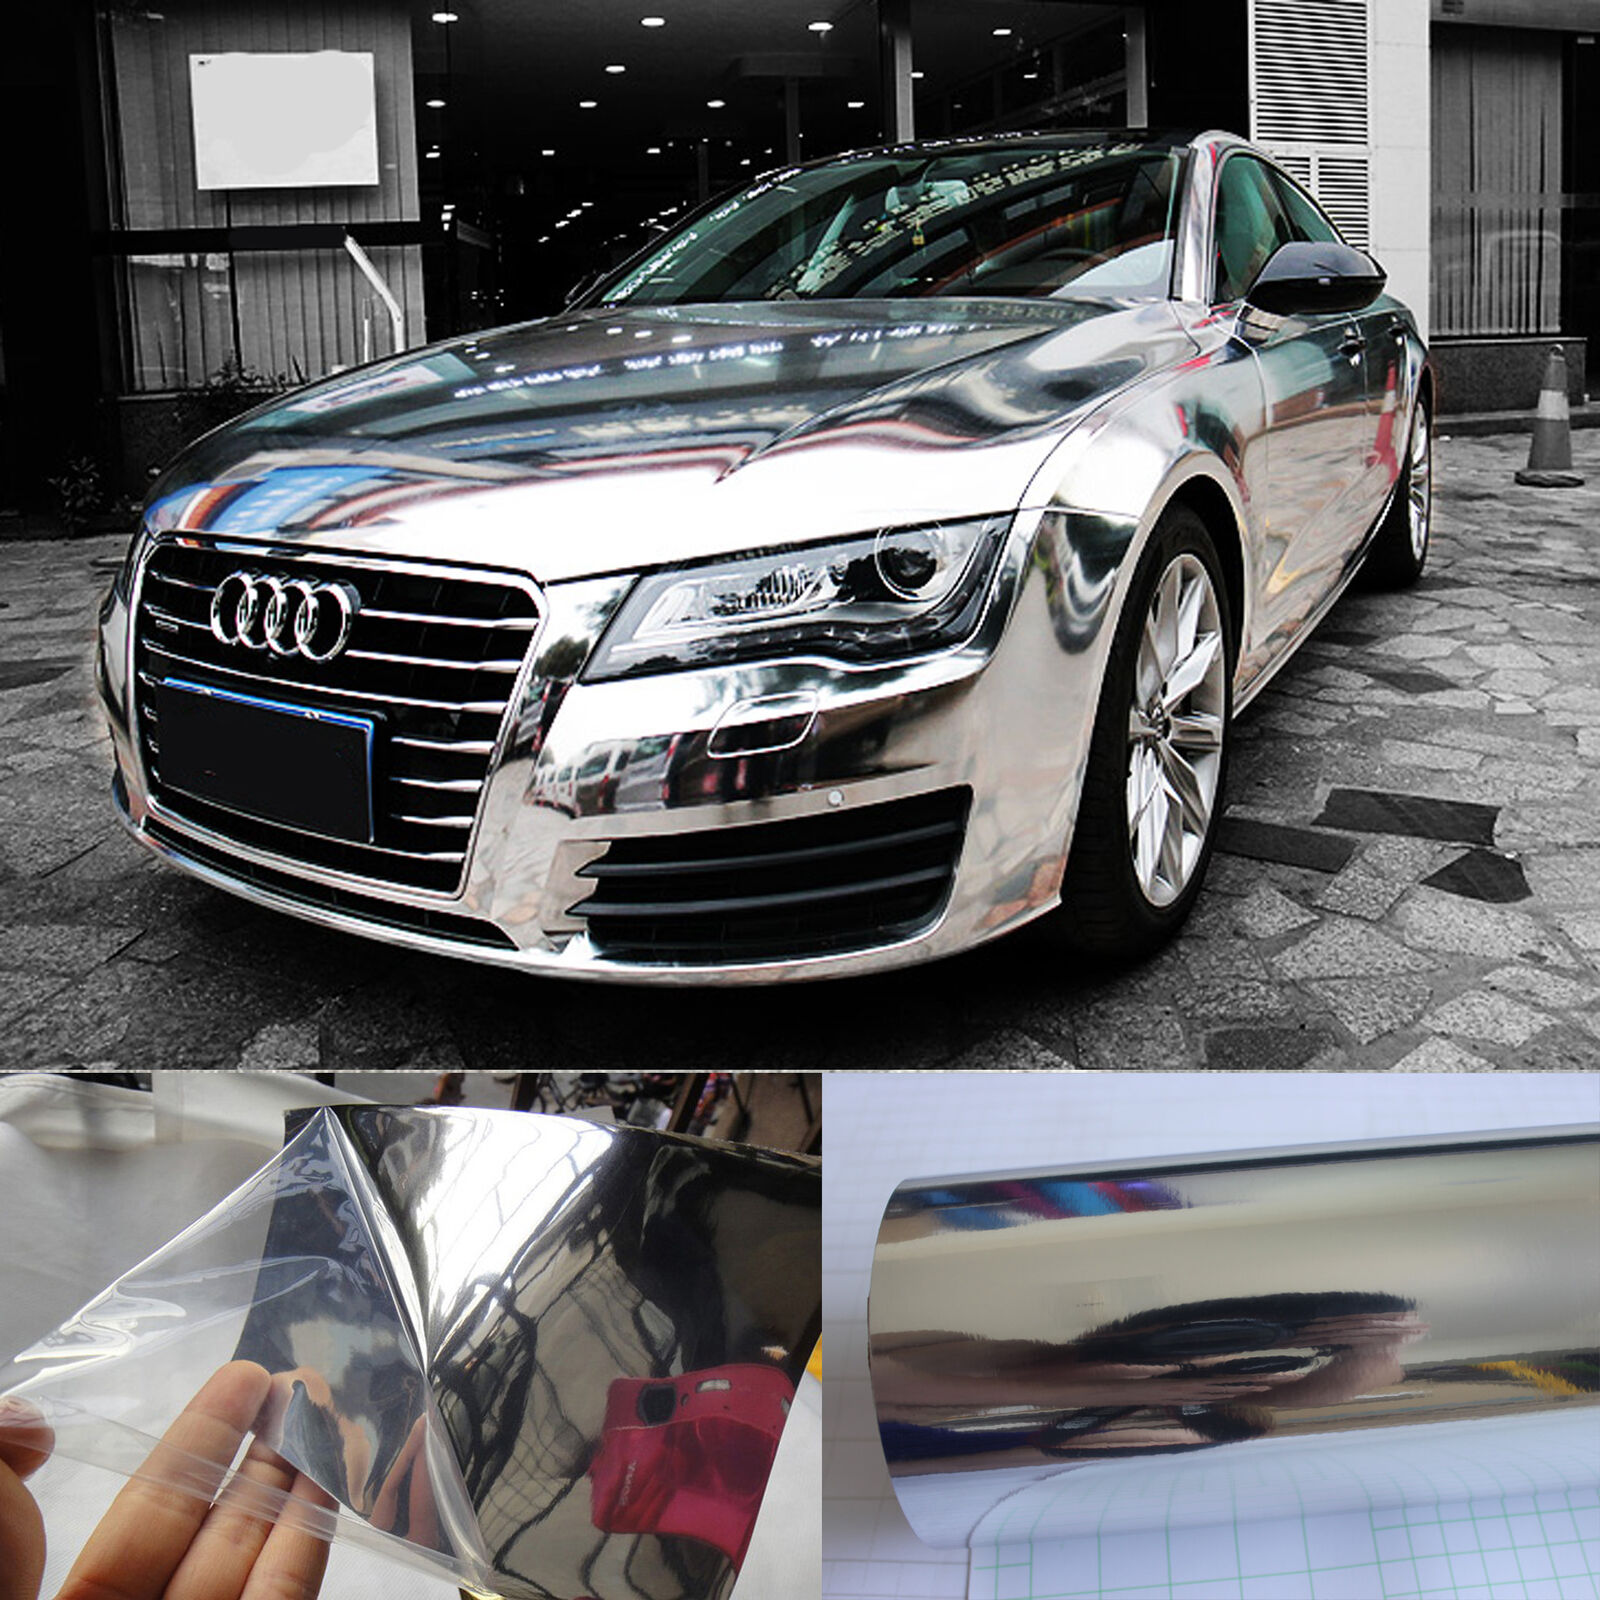 Details about 12 x 60 cool car wrap flat glossy mirror chrome vinyl sticker film silver hd